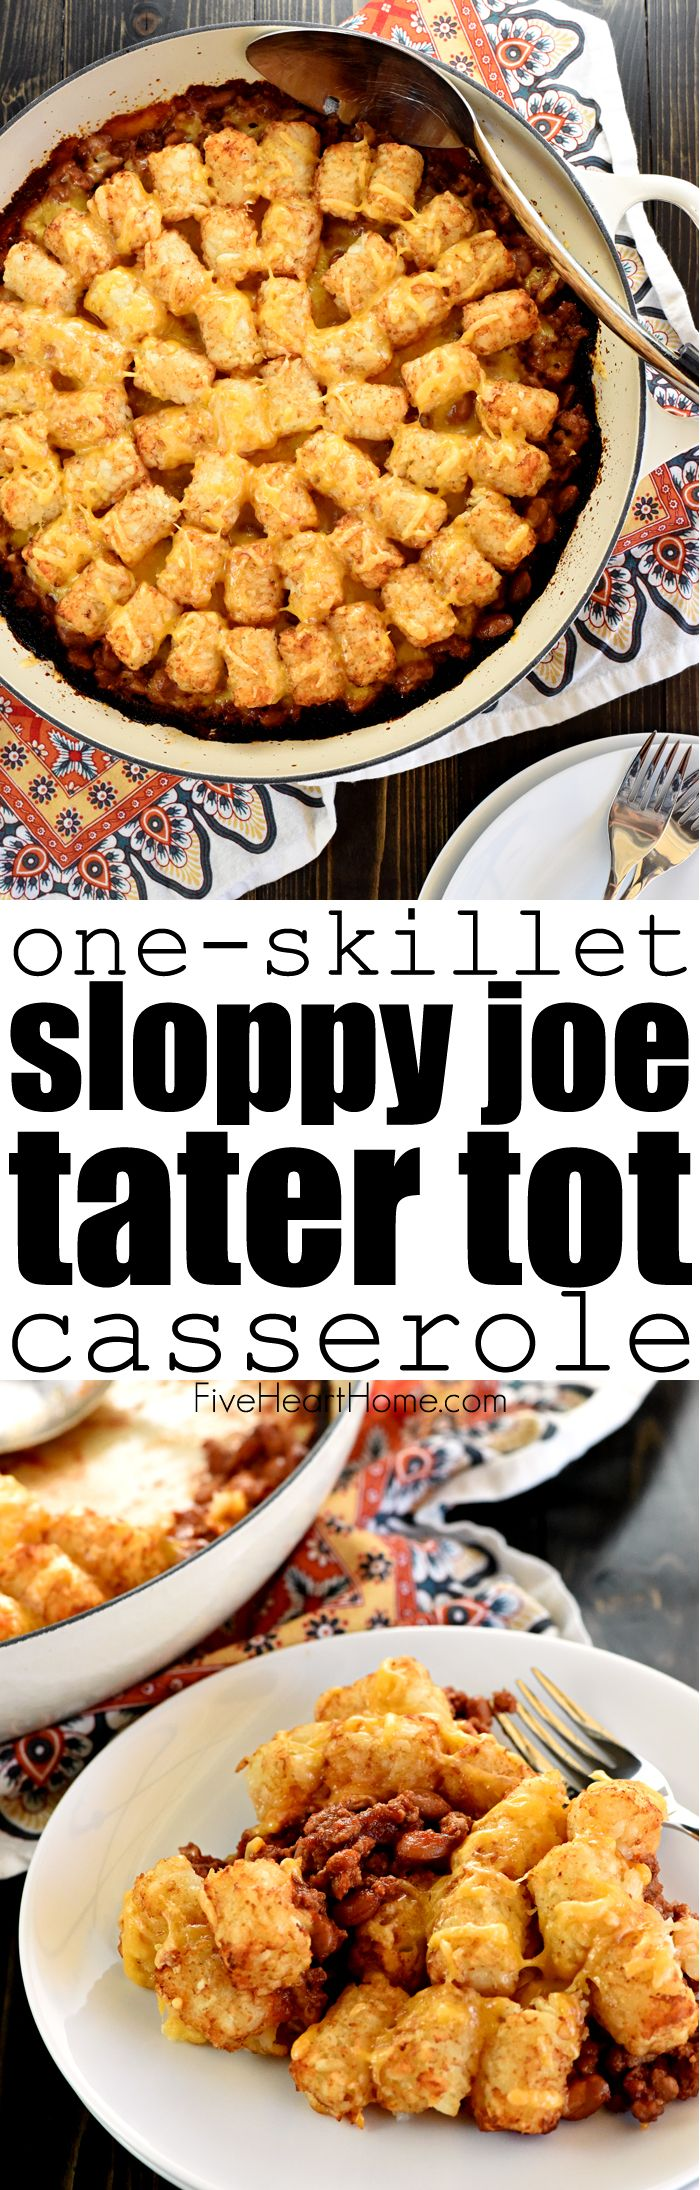 One-Skillet Sloppy Joe Tater Tot Casserole ~ a quick, easy, family-pleasing weeknight dinner recipe that's made in just one pan! | FiveHeartHome.com